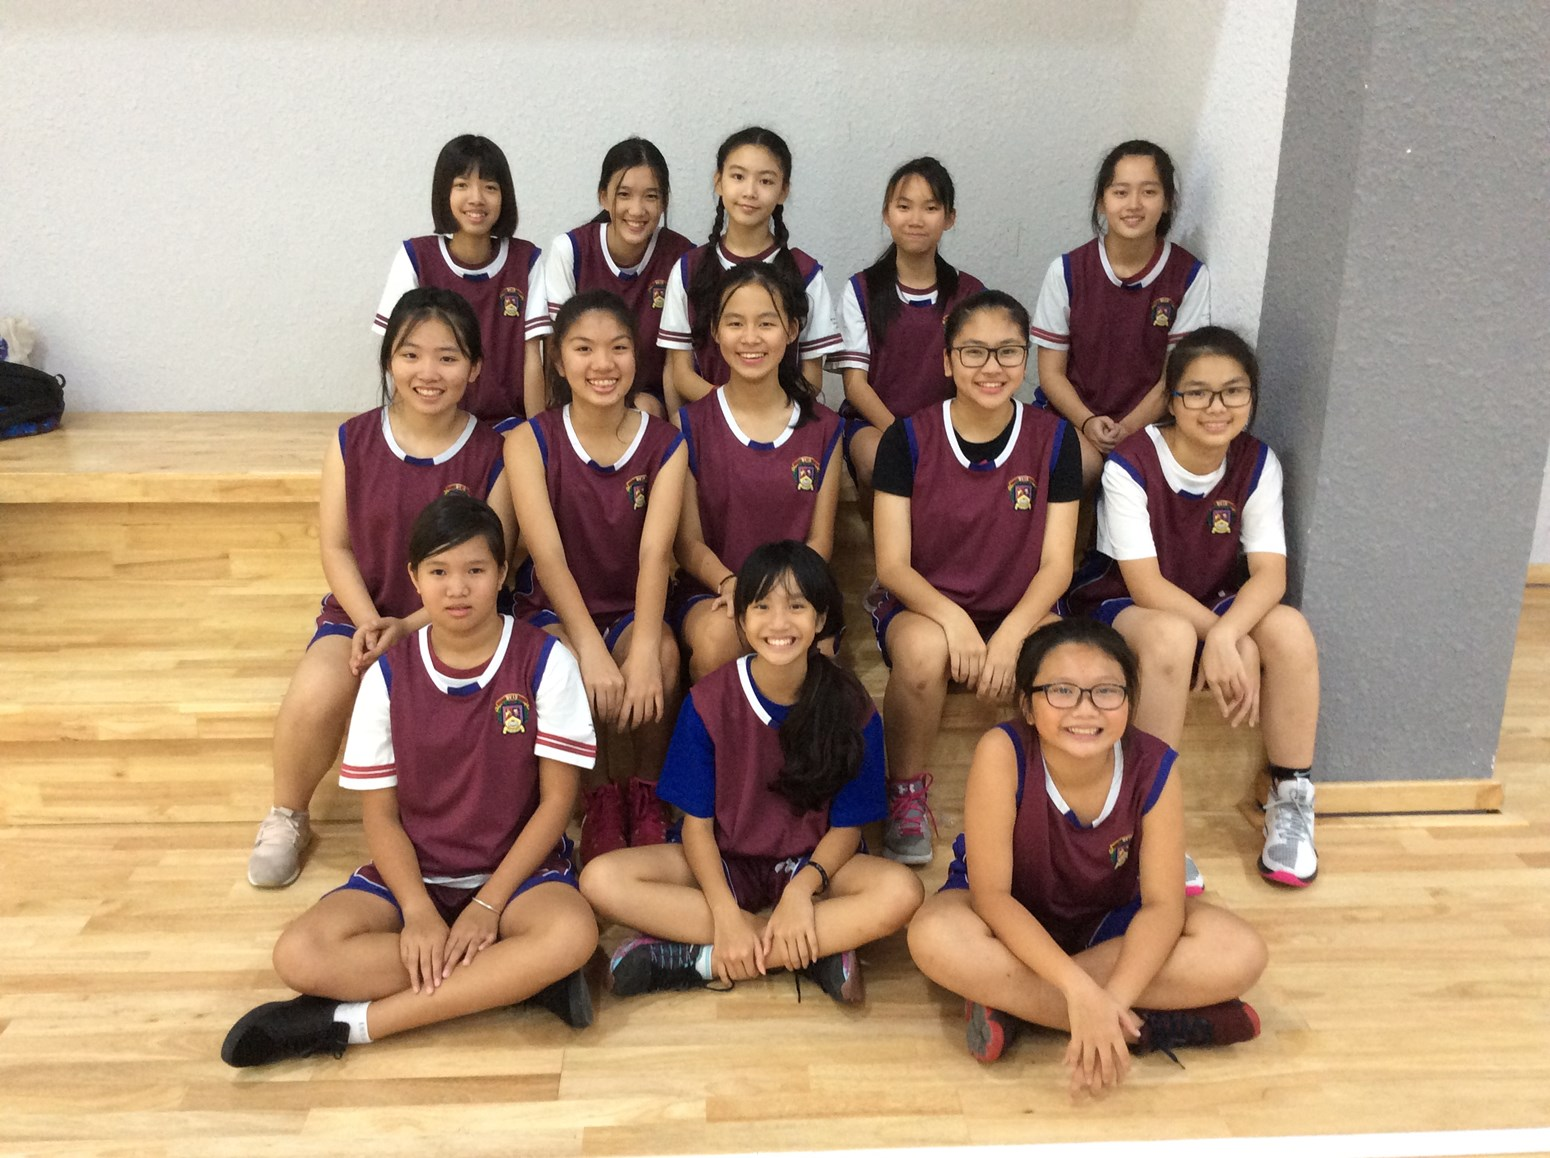 BVIS Basketball HCMC 2018